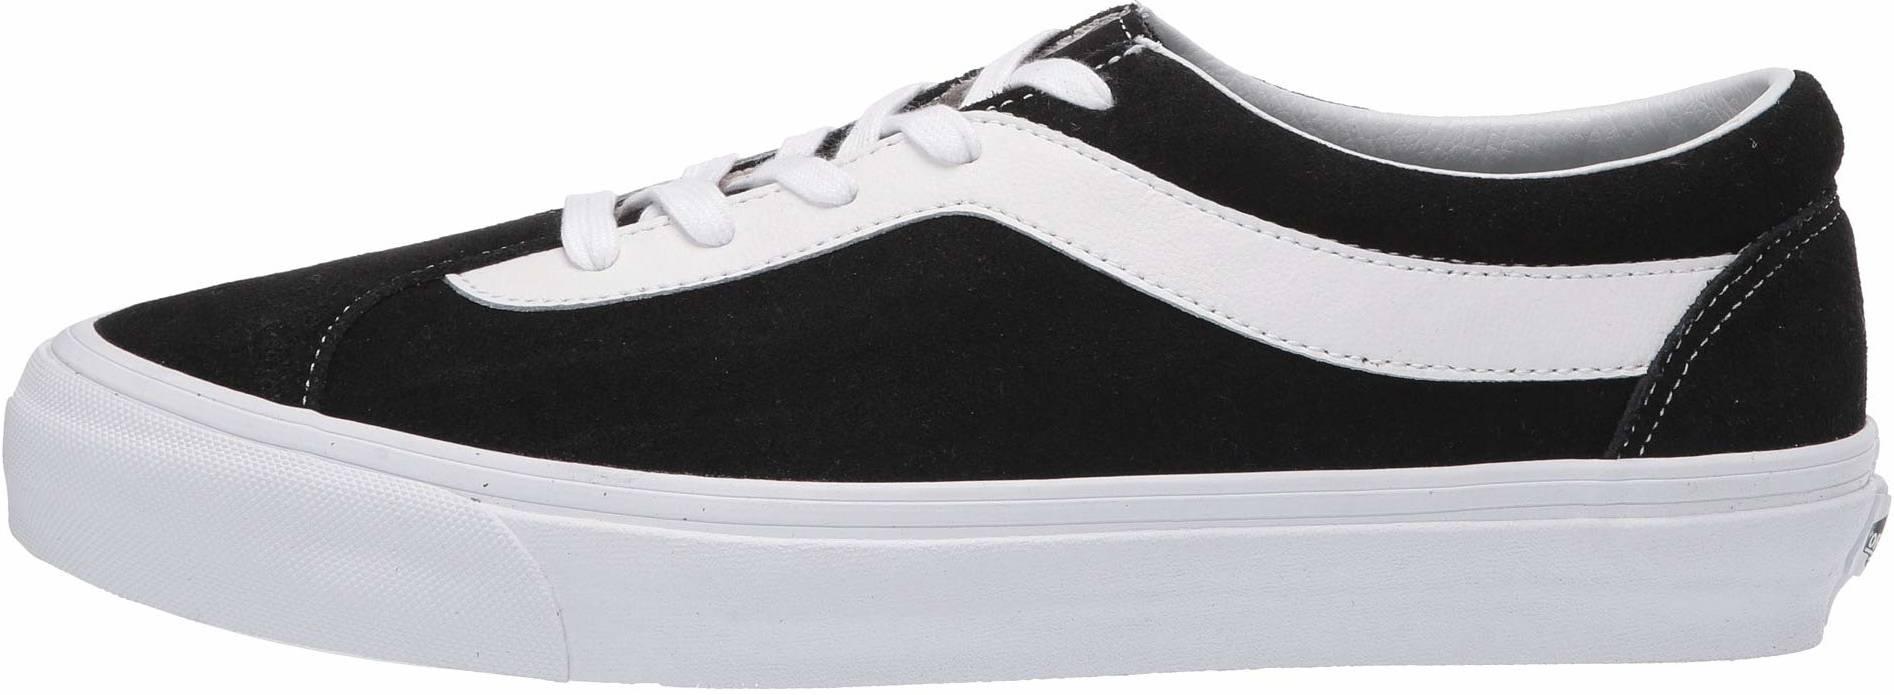 Only $39 + Review of Vans Bold NI